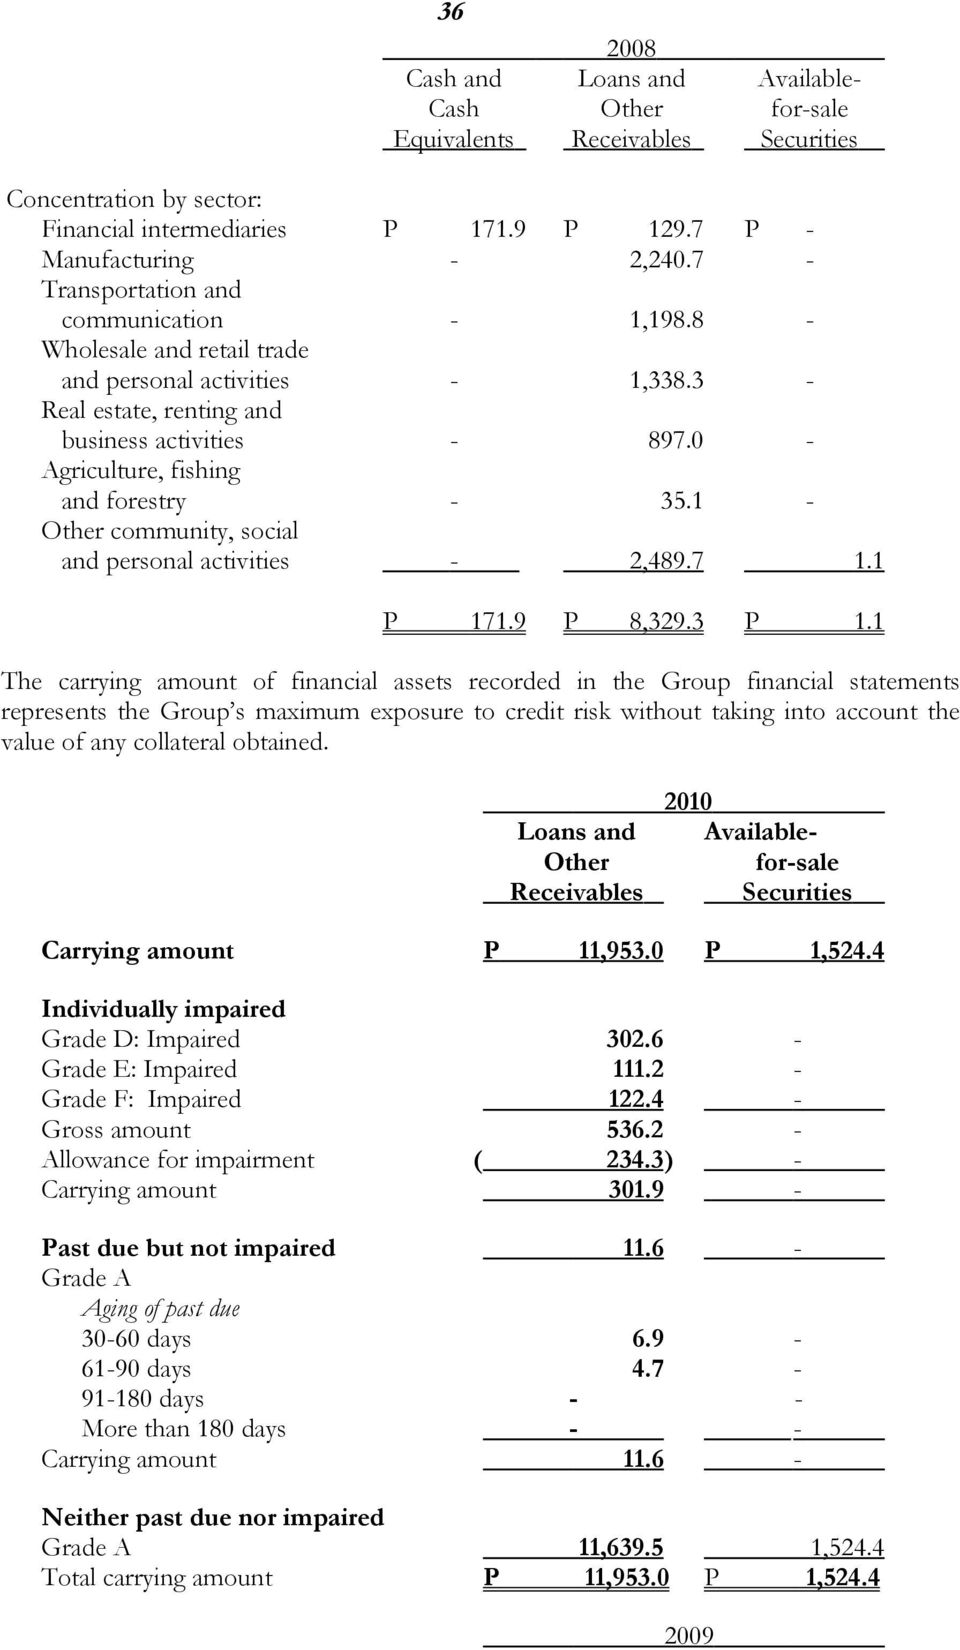 0 - Agriculture, fishing and forestry - 35.1 - Other community, social and personal activities - 2,489.7 1.1 P 171.9 P 8,329.3 P 1.